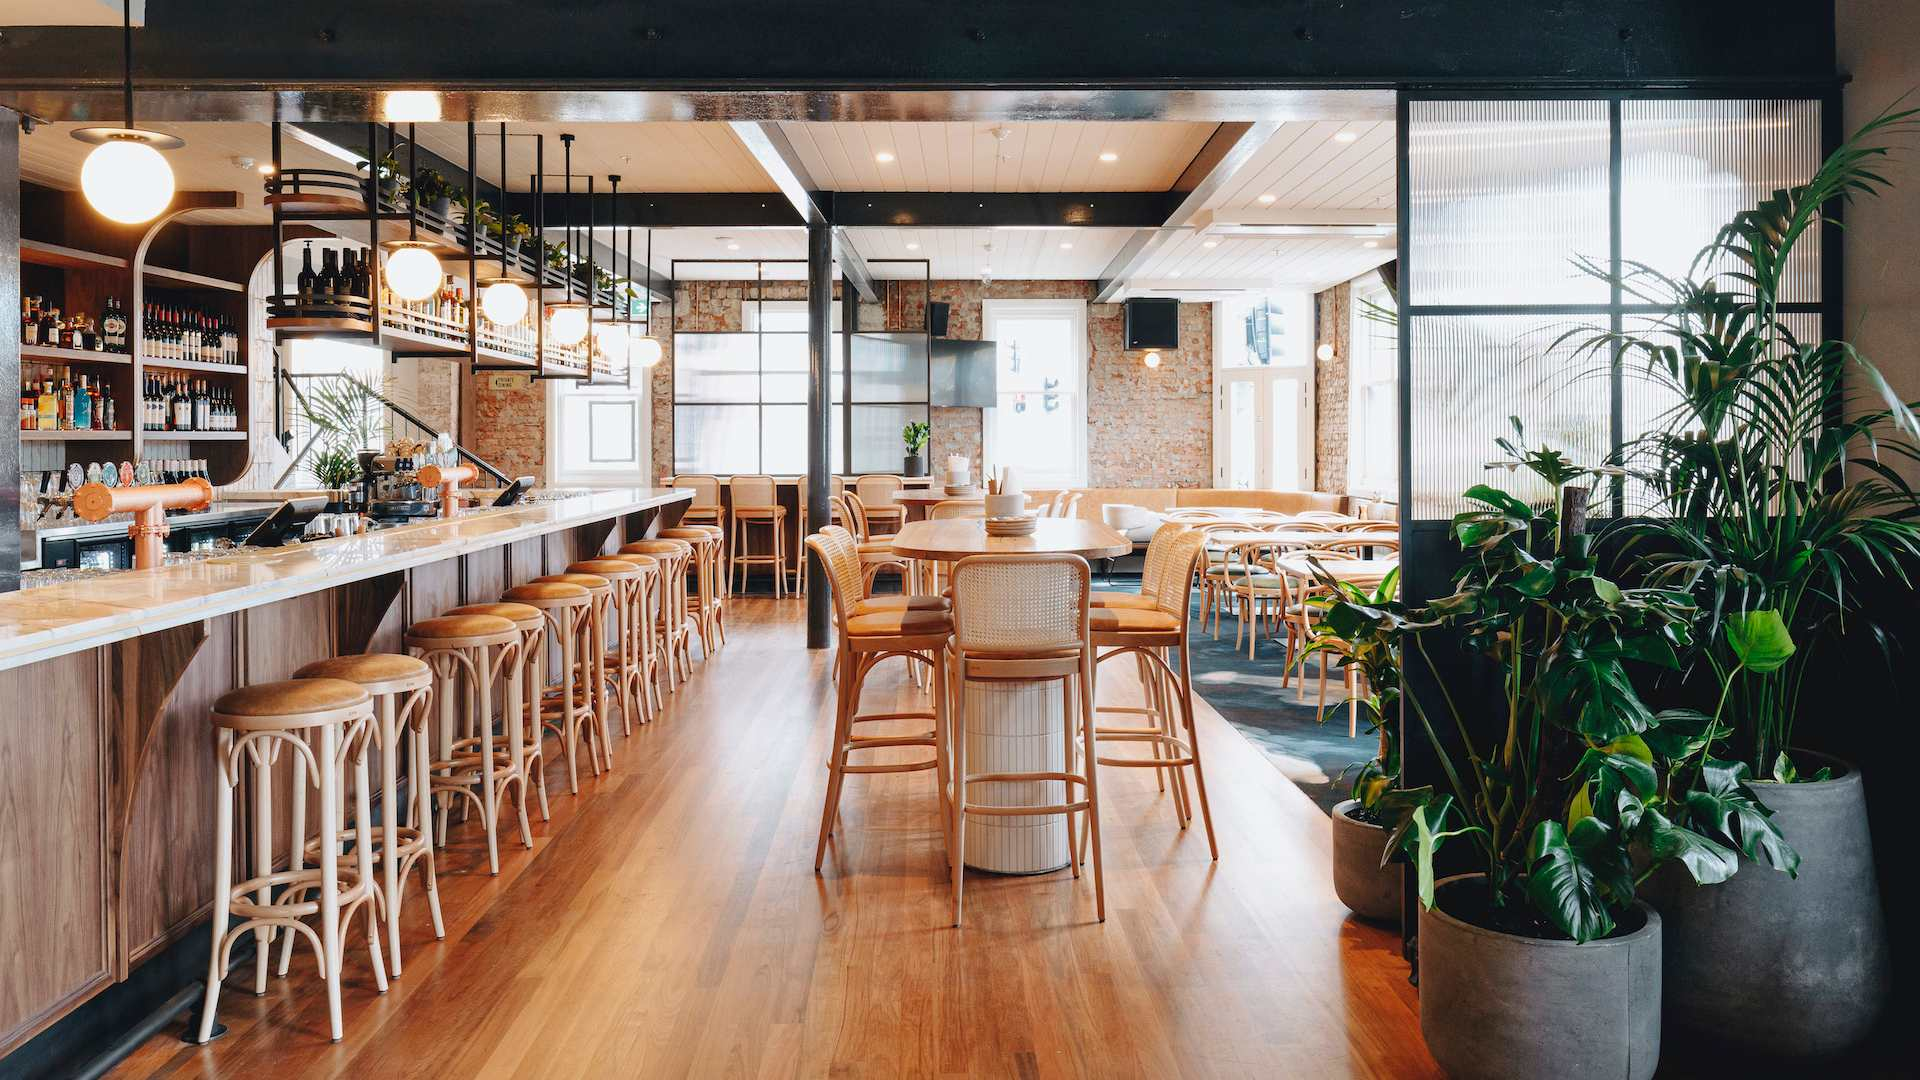 Sarah Sands Hotel Is the New 167-Year-Old Pub With a $3 Million Facelift